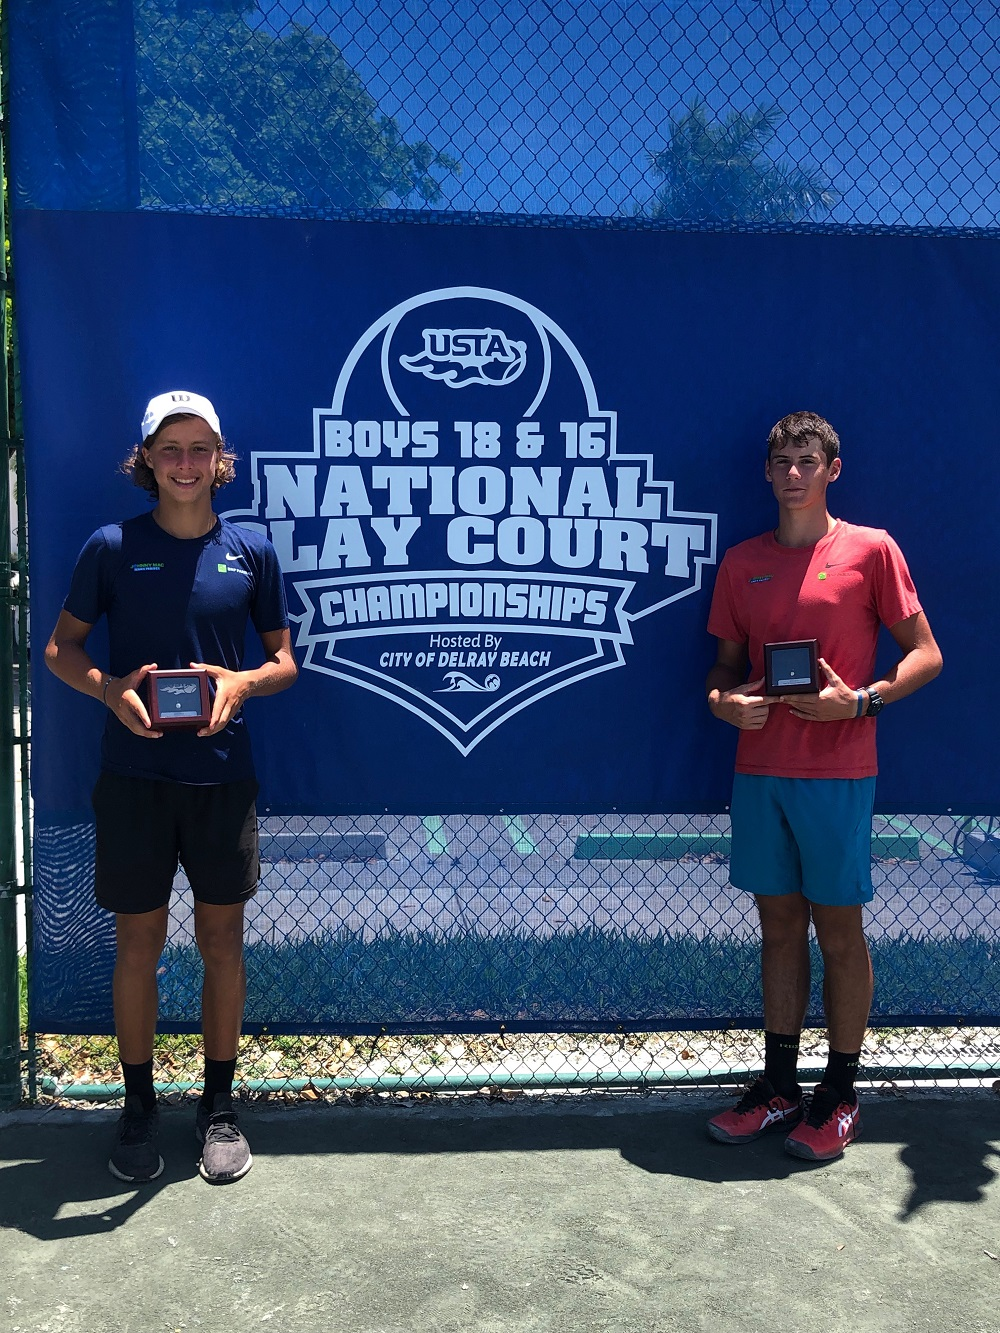 Ari Cotoulas (left) and Sebastian Sec (right) earned Silver and Gold Balls, respectively, at the 2021 Clay Court Championships.